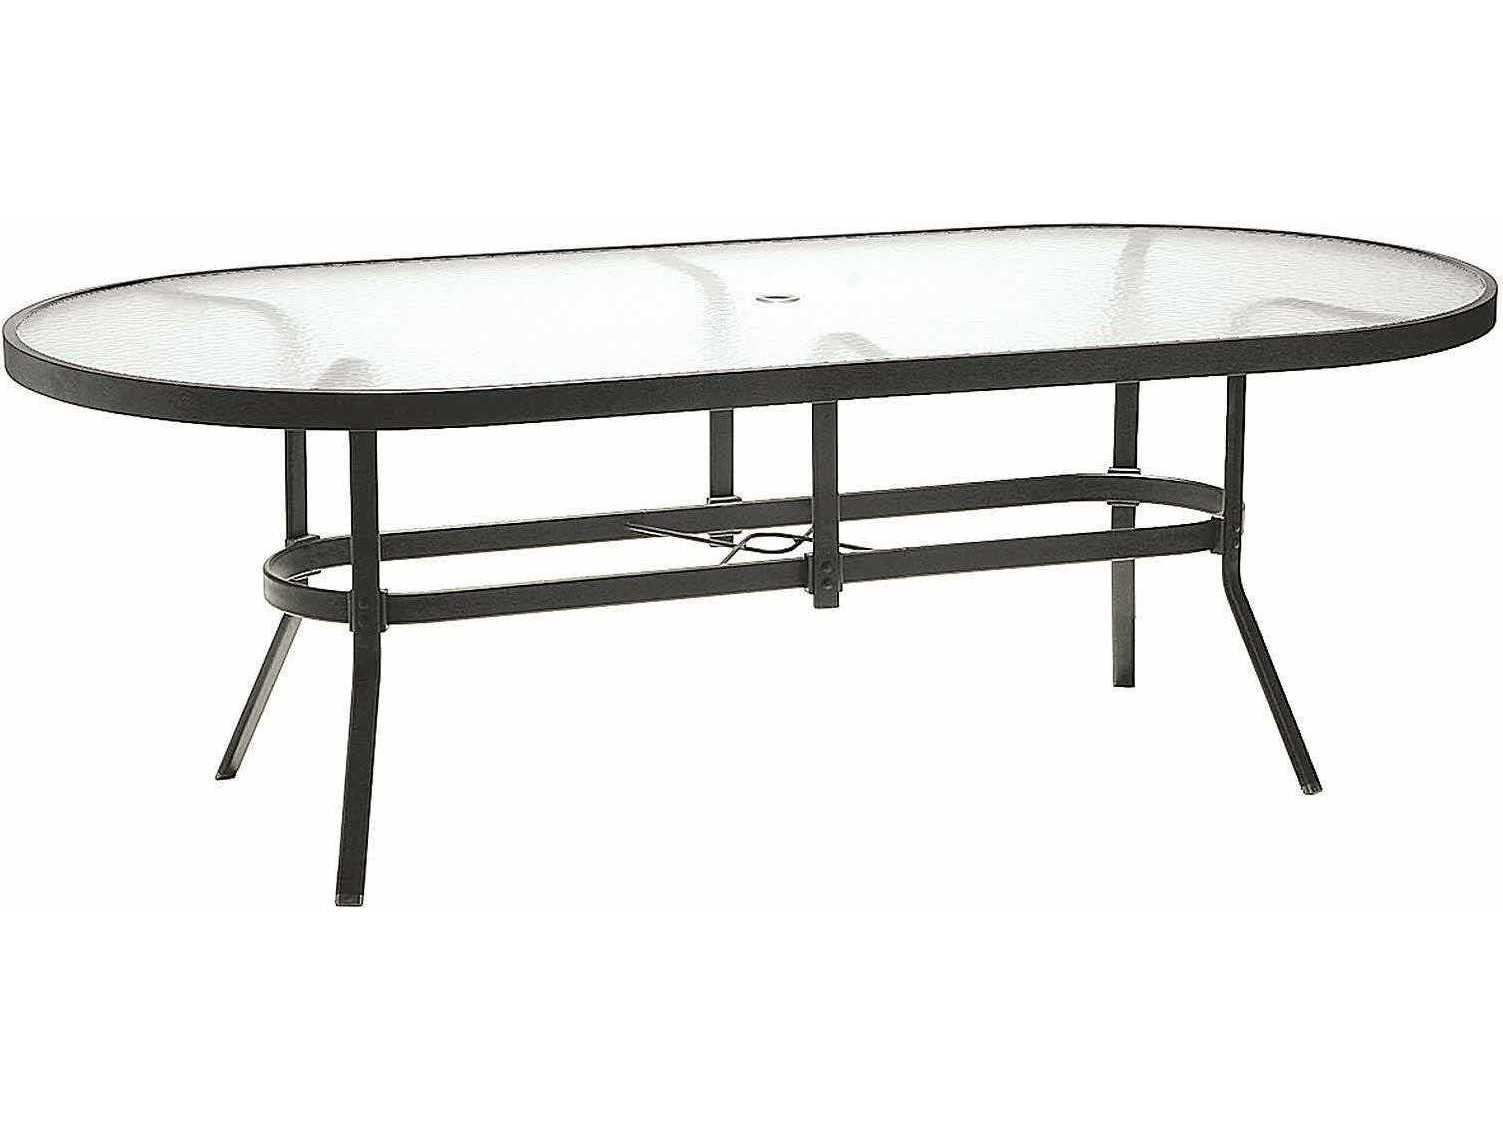 Winston Obscure Glass Aluminum 84 x 42 Oval Dining  : WSM8184RGU1zm from www.luxedecor.com size 1650 x 1050 jpeg 50kB